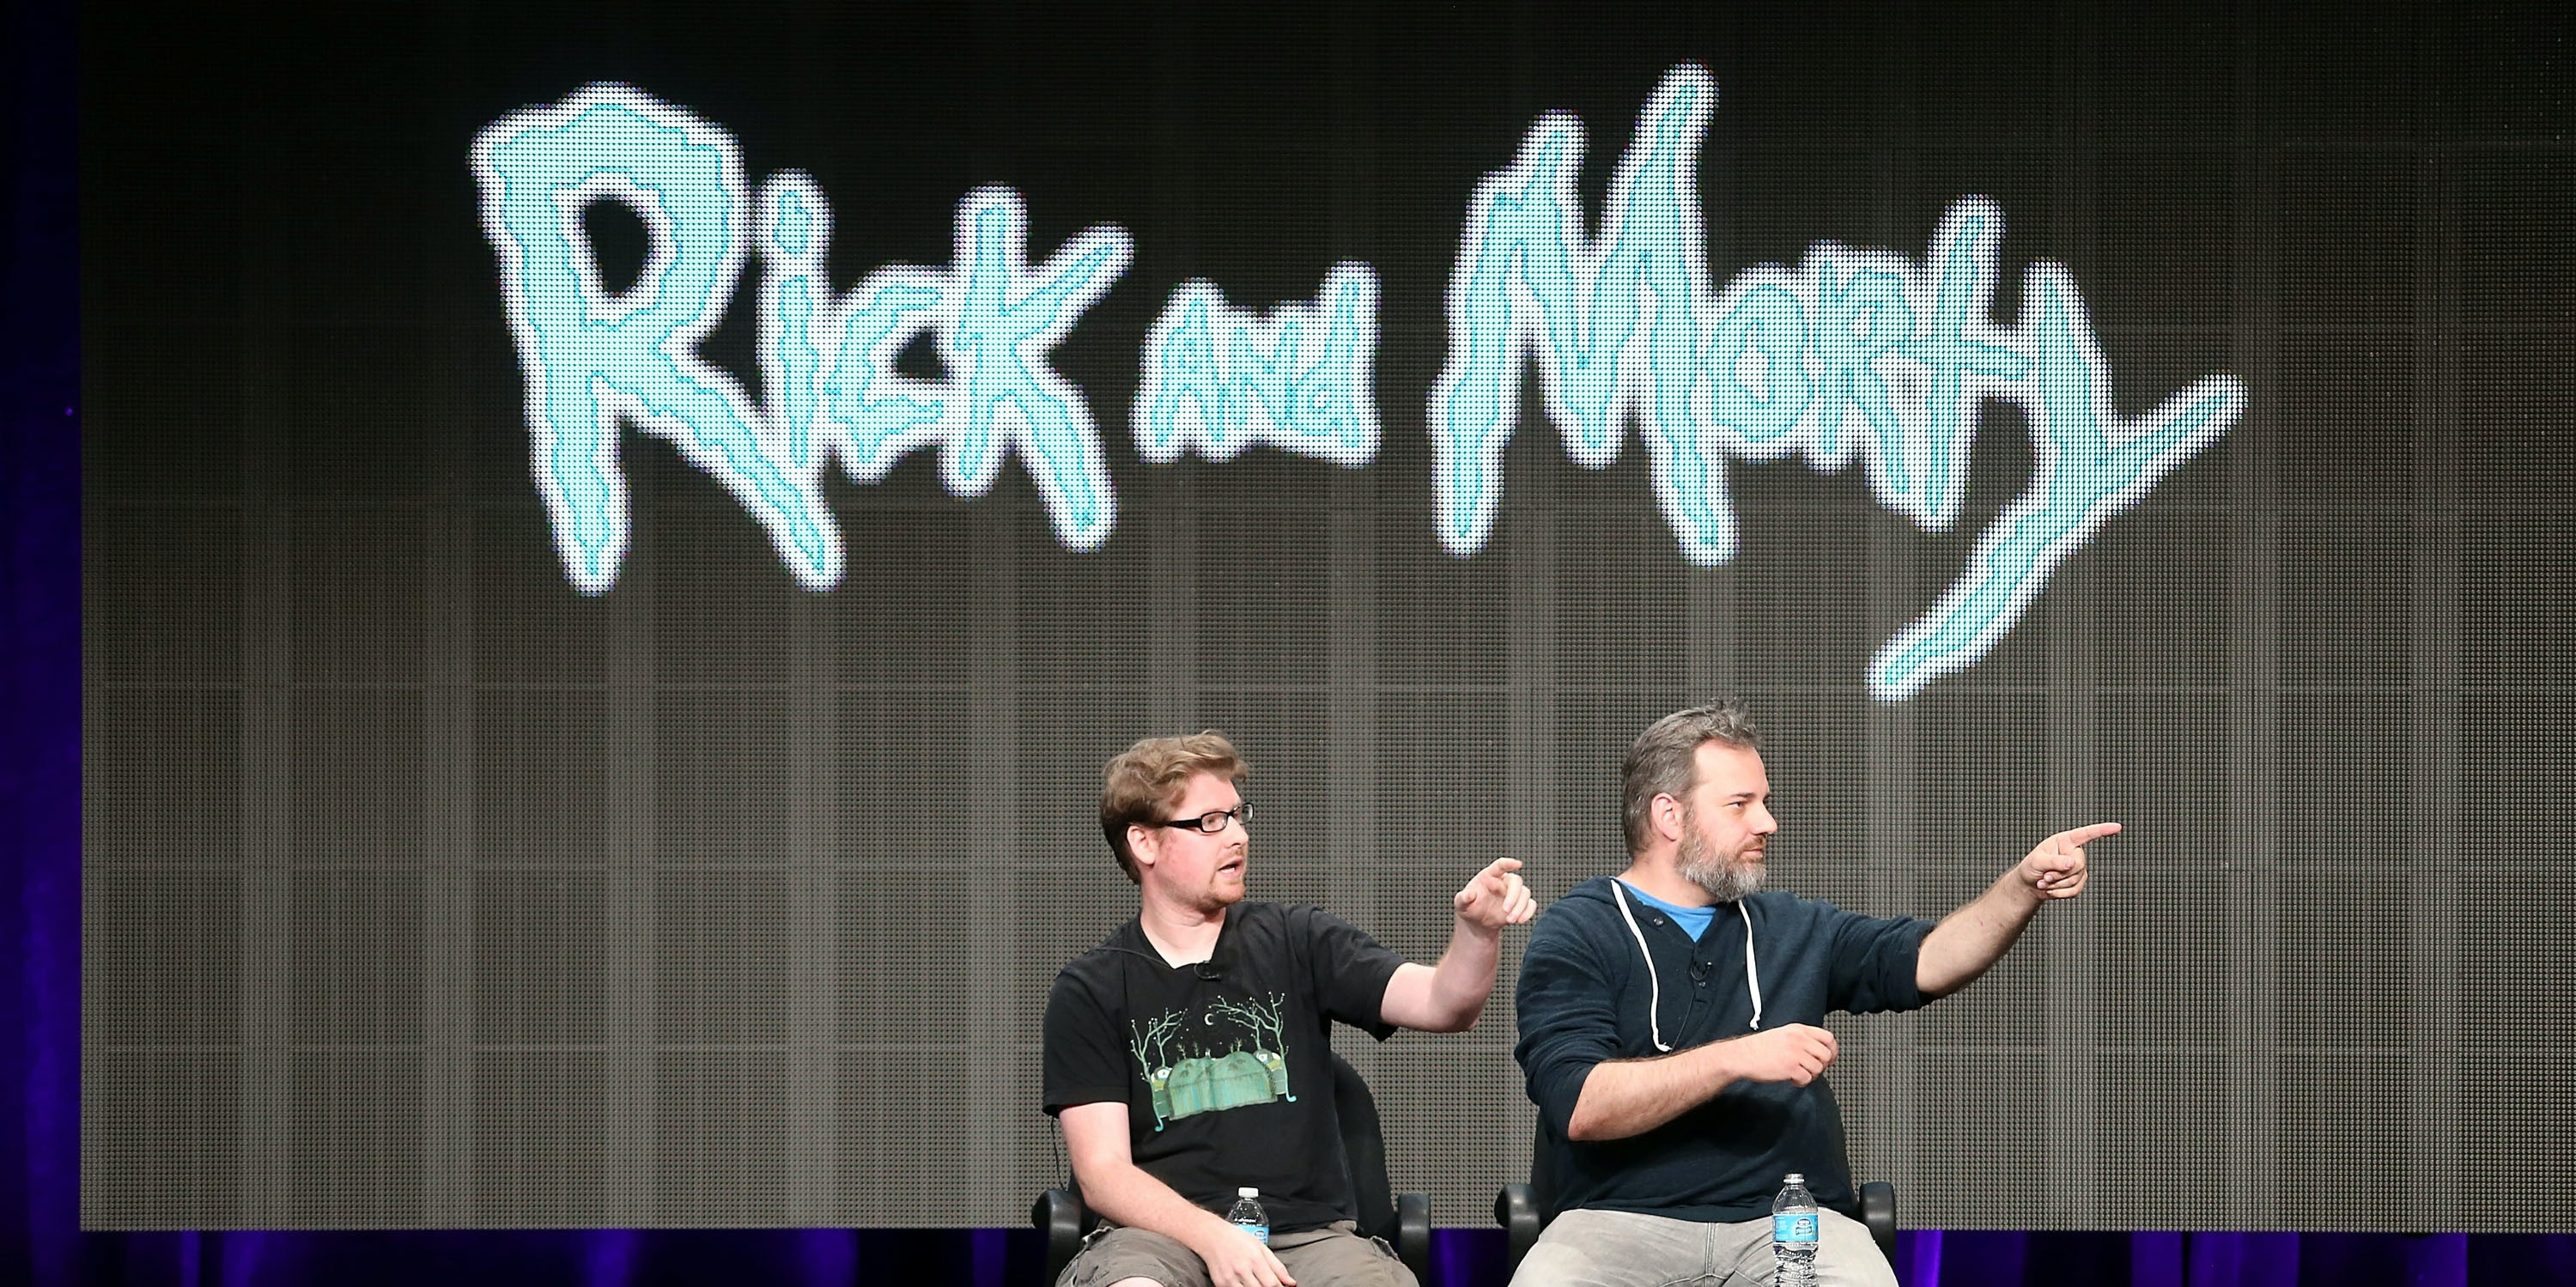 BEVERLY HILLS, CA - JULY 24:  Producers Justin Roiland (L) and Dan Harmon speak onstage during the Adult Swim: Rick and Morty panel at the Turner Broadcasting portion of the 2013 Summer Television Critics Association tour at the Beverly Hilton Hotel on July 24, 2013 in Beverly Hills, California.  (Photo by Frederick M. Brown/Getty Images)